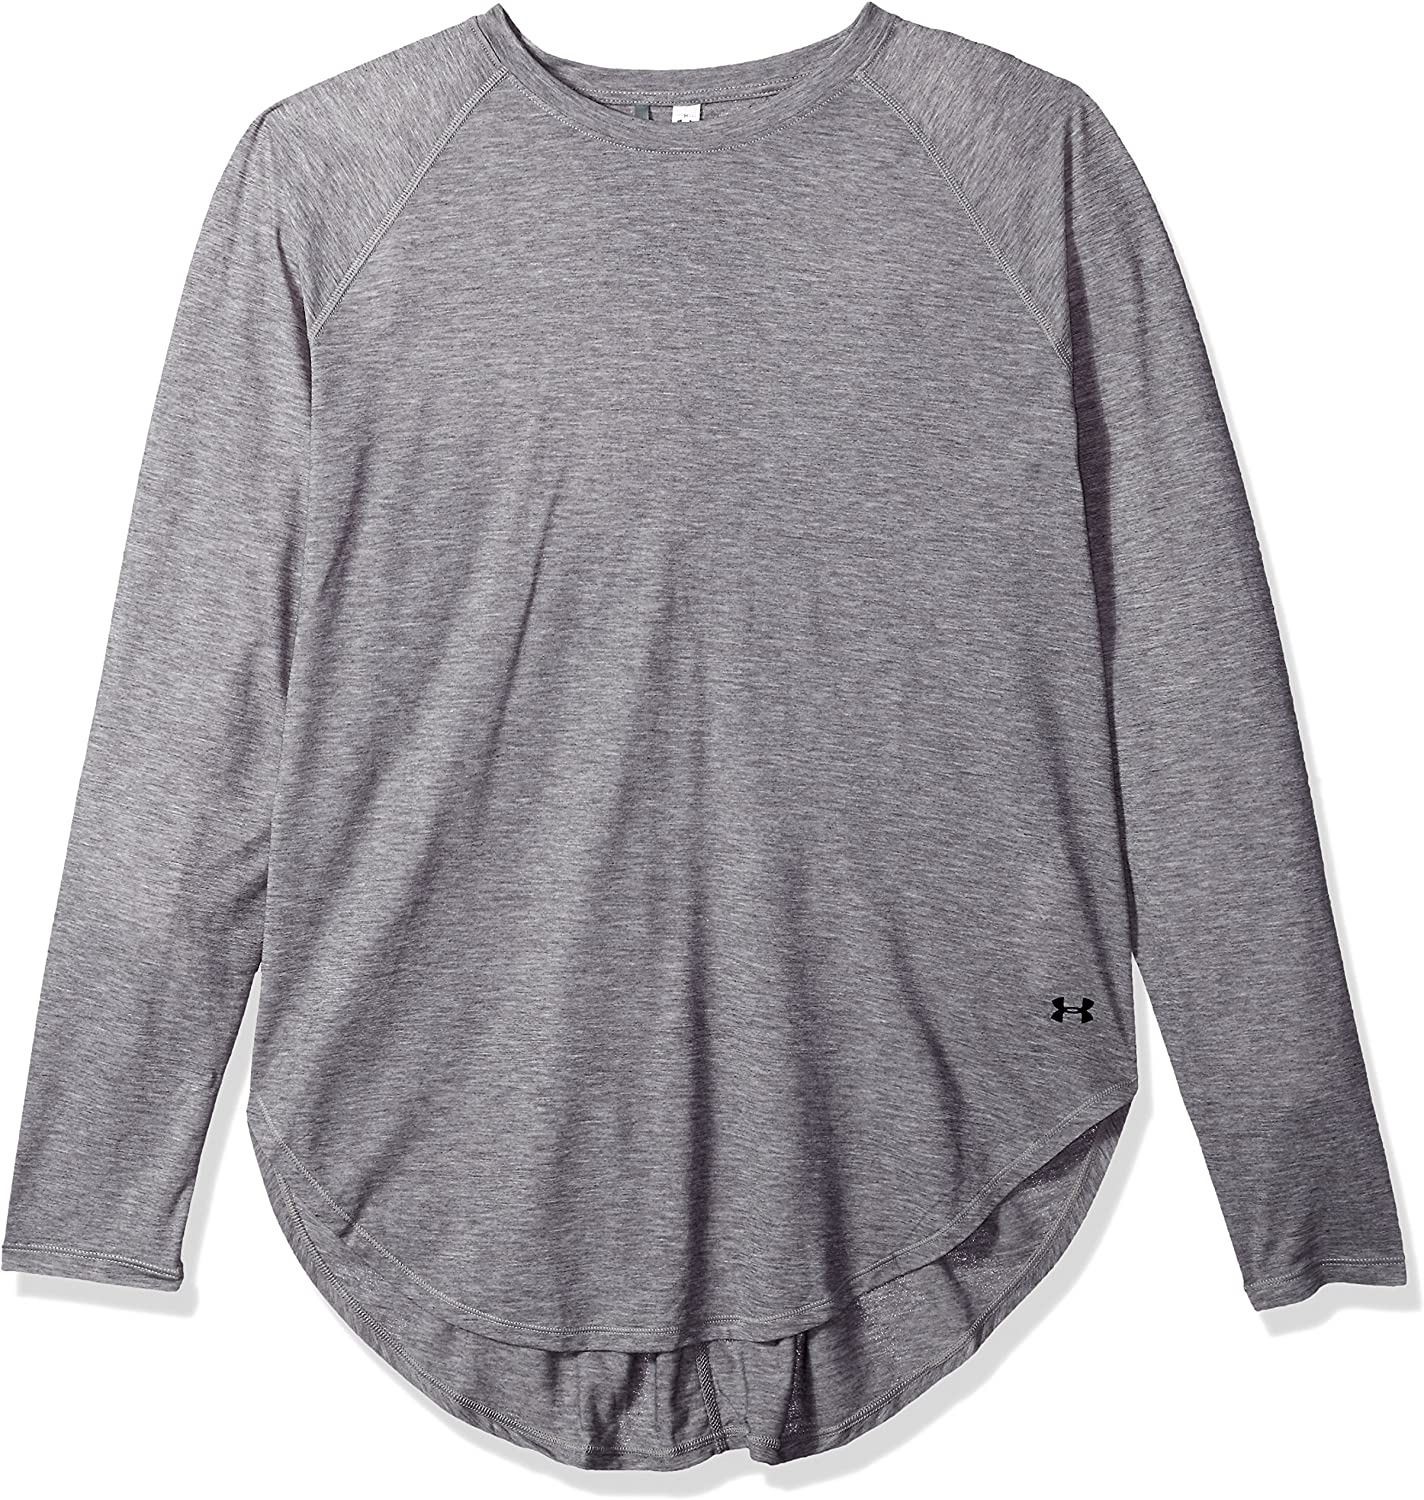 Under Armour Selling and selling Women's Supreme Top Long Sleeve Max 79% OFF